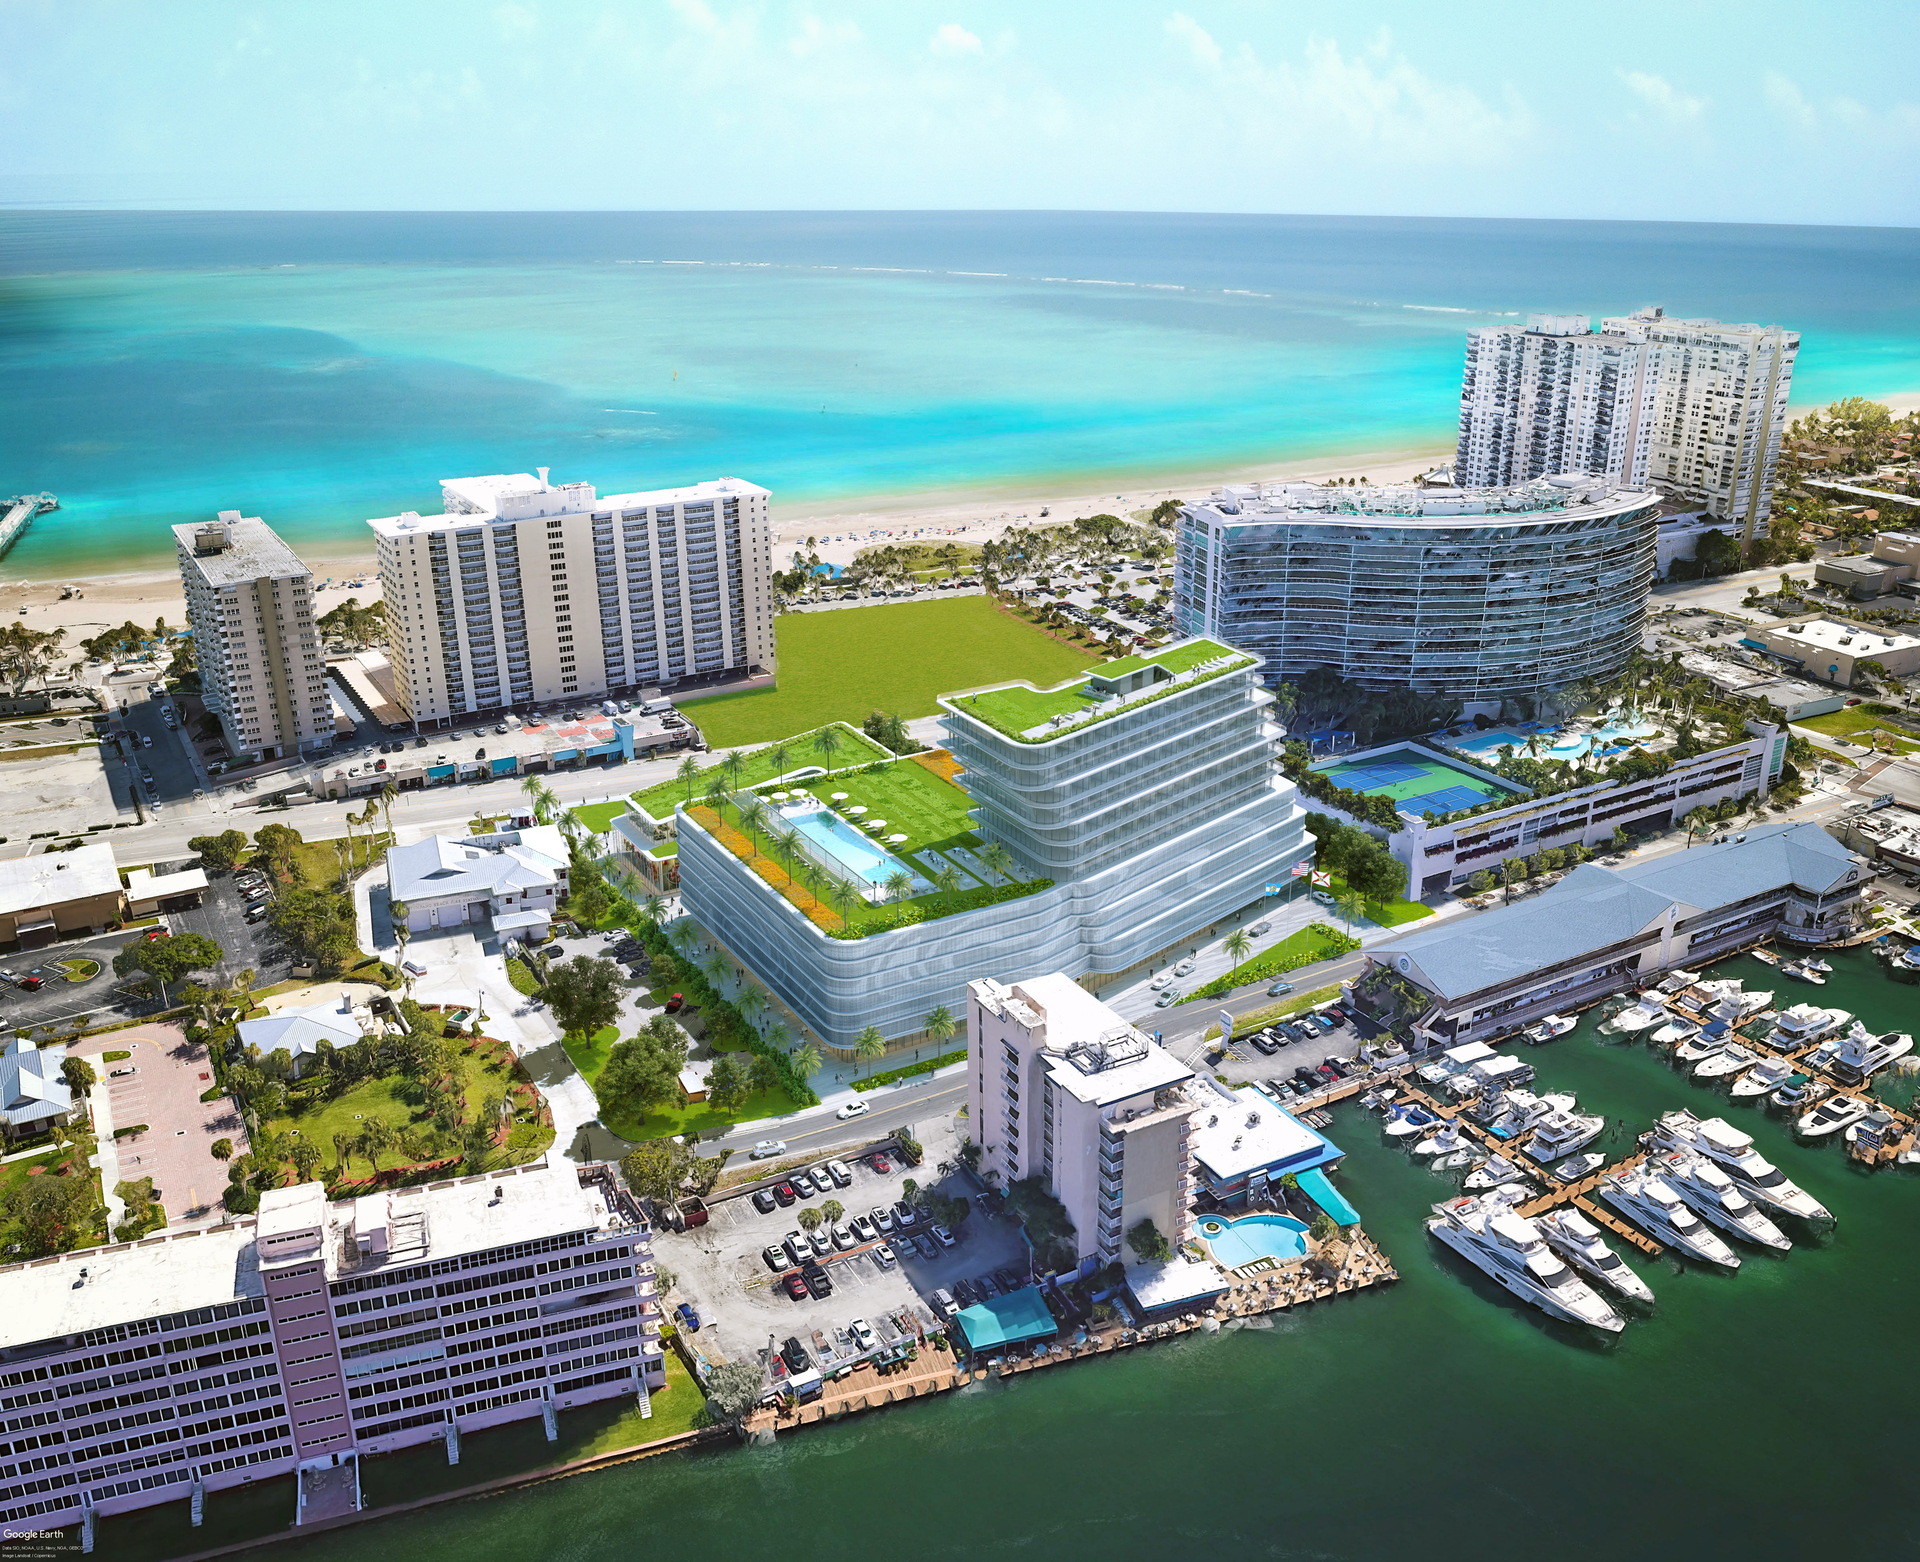 New hotel development in South Florida.